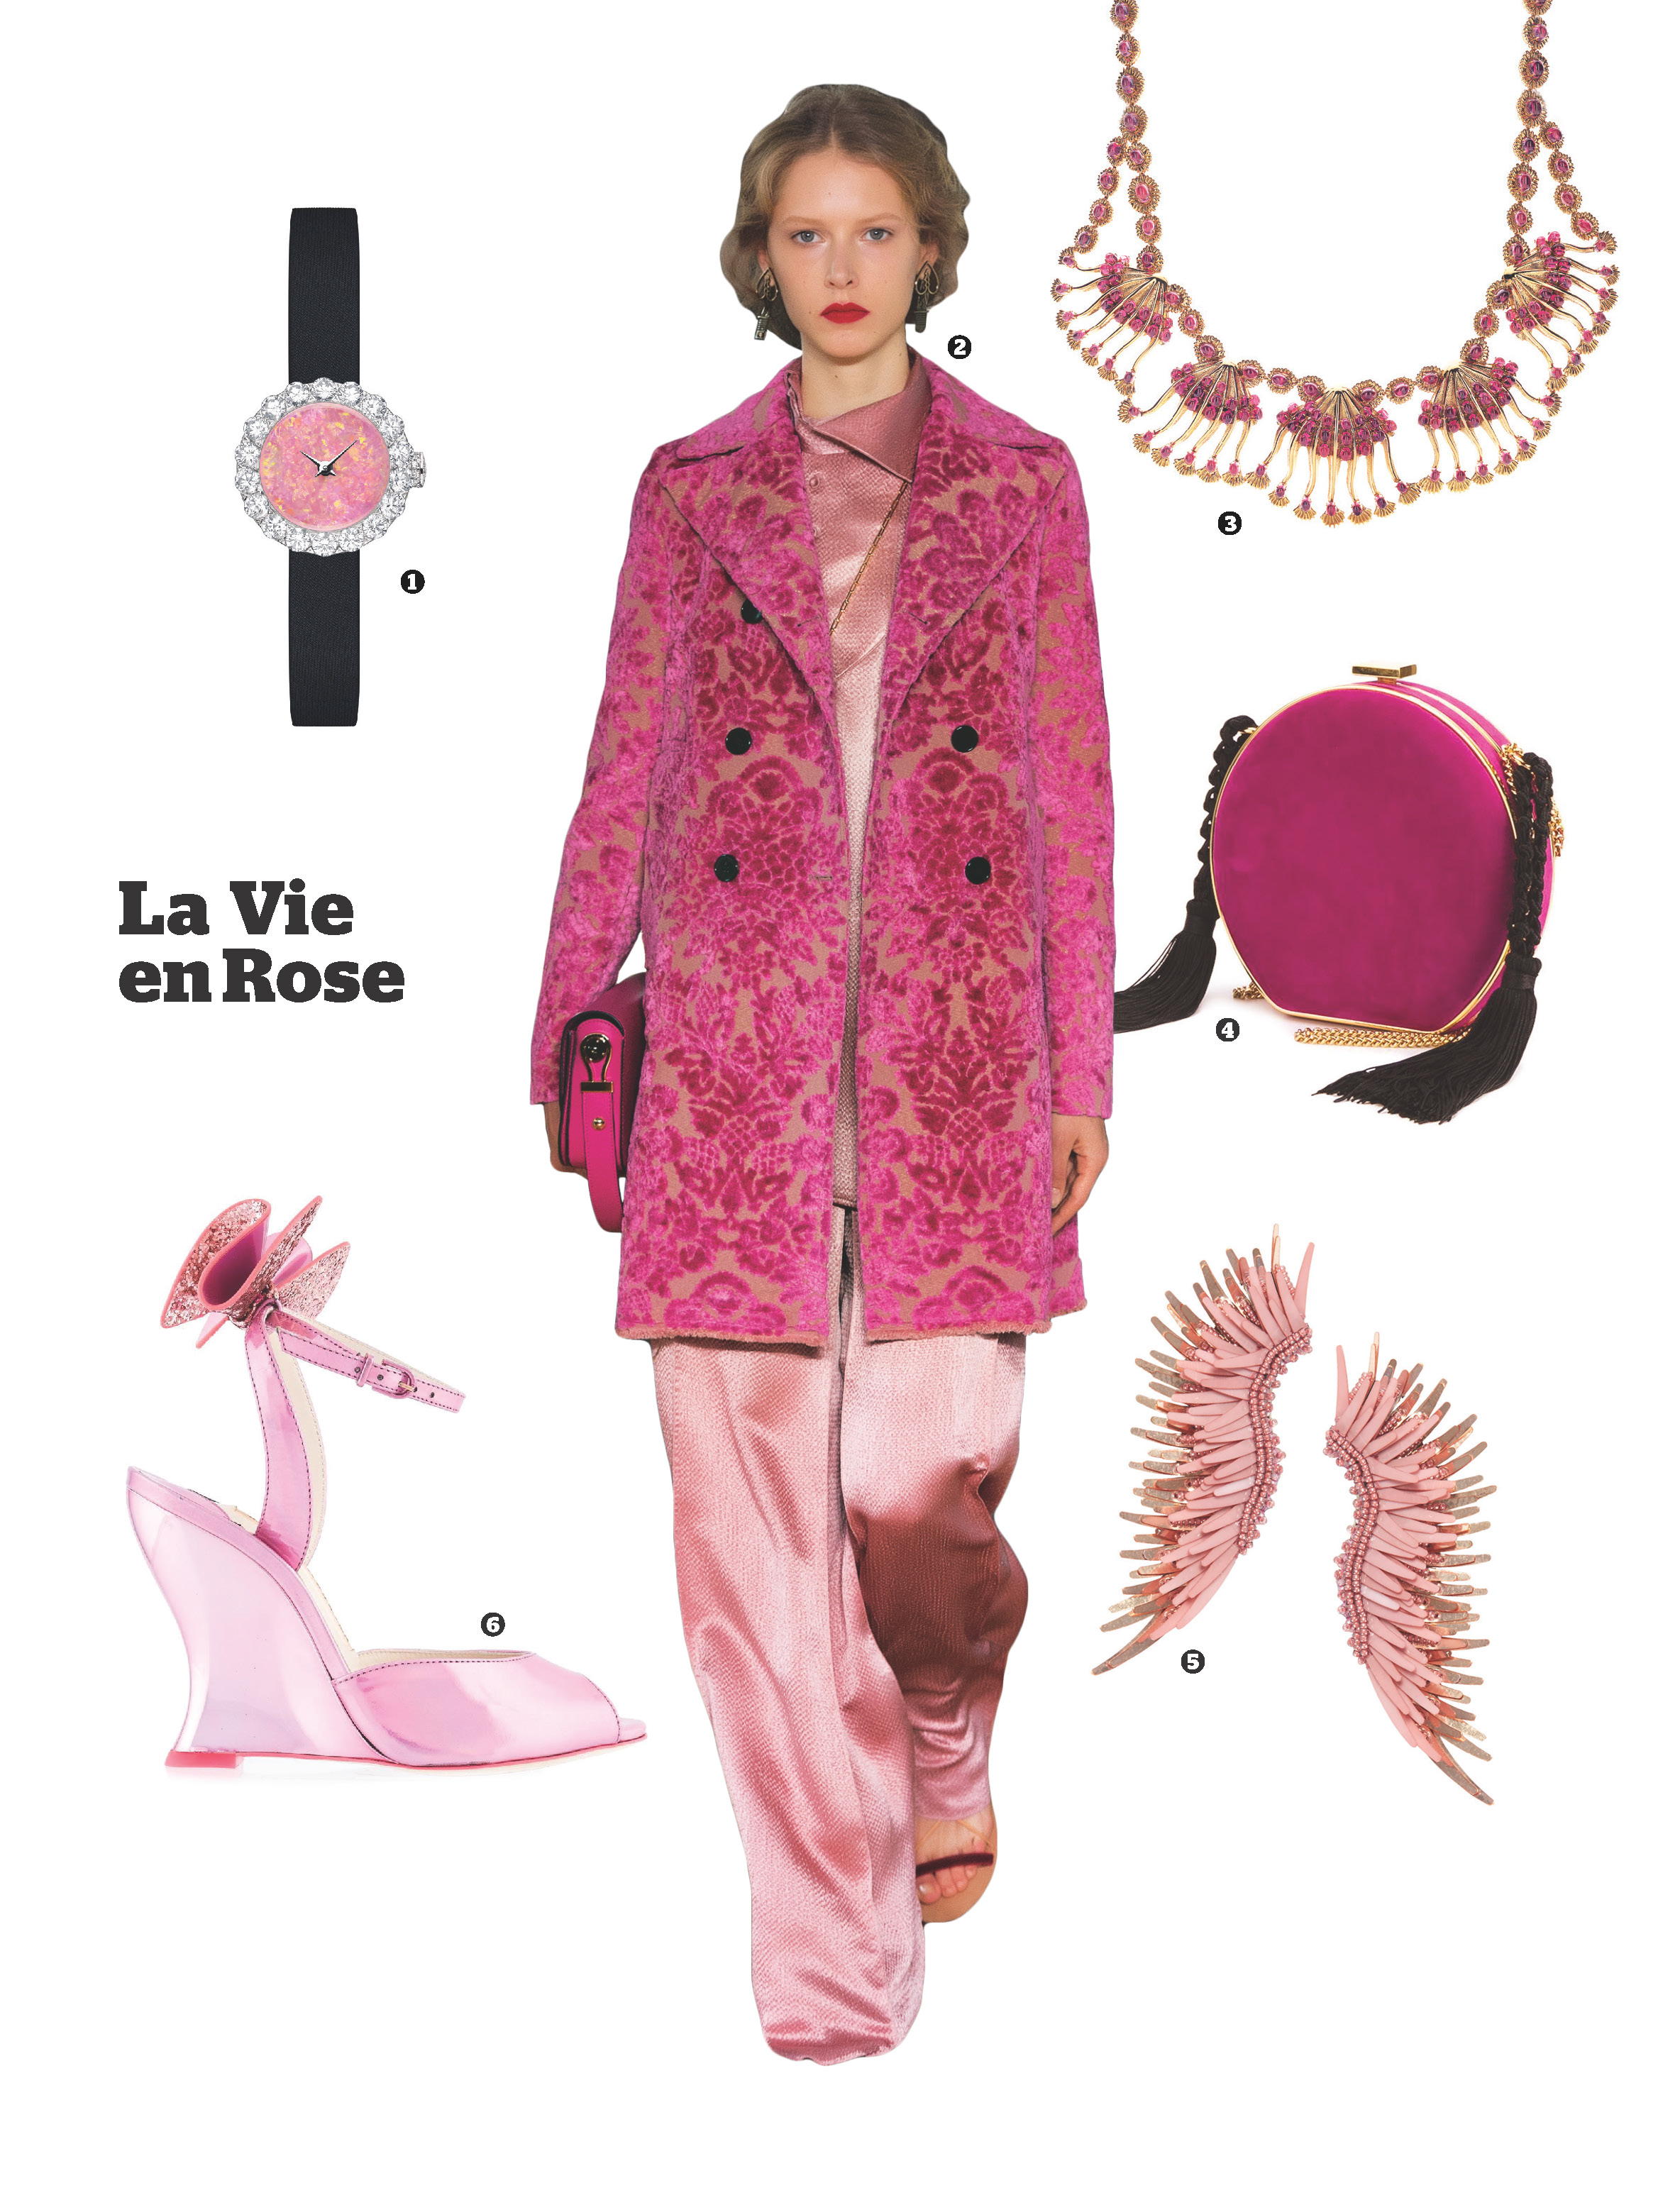 la vie en rose essays How to get a brooch la vie en rose's brooch, la vie en rose's noble brooch, la vie en rose's brilliant brooch such brooches as: la vie en rose's brooch, la vie en rose's noble brooch, la vie en rose's brilliant brooch can be purchased from merchant of mammon:.